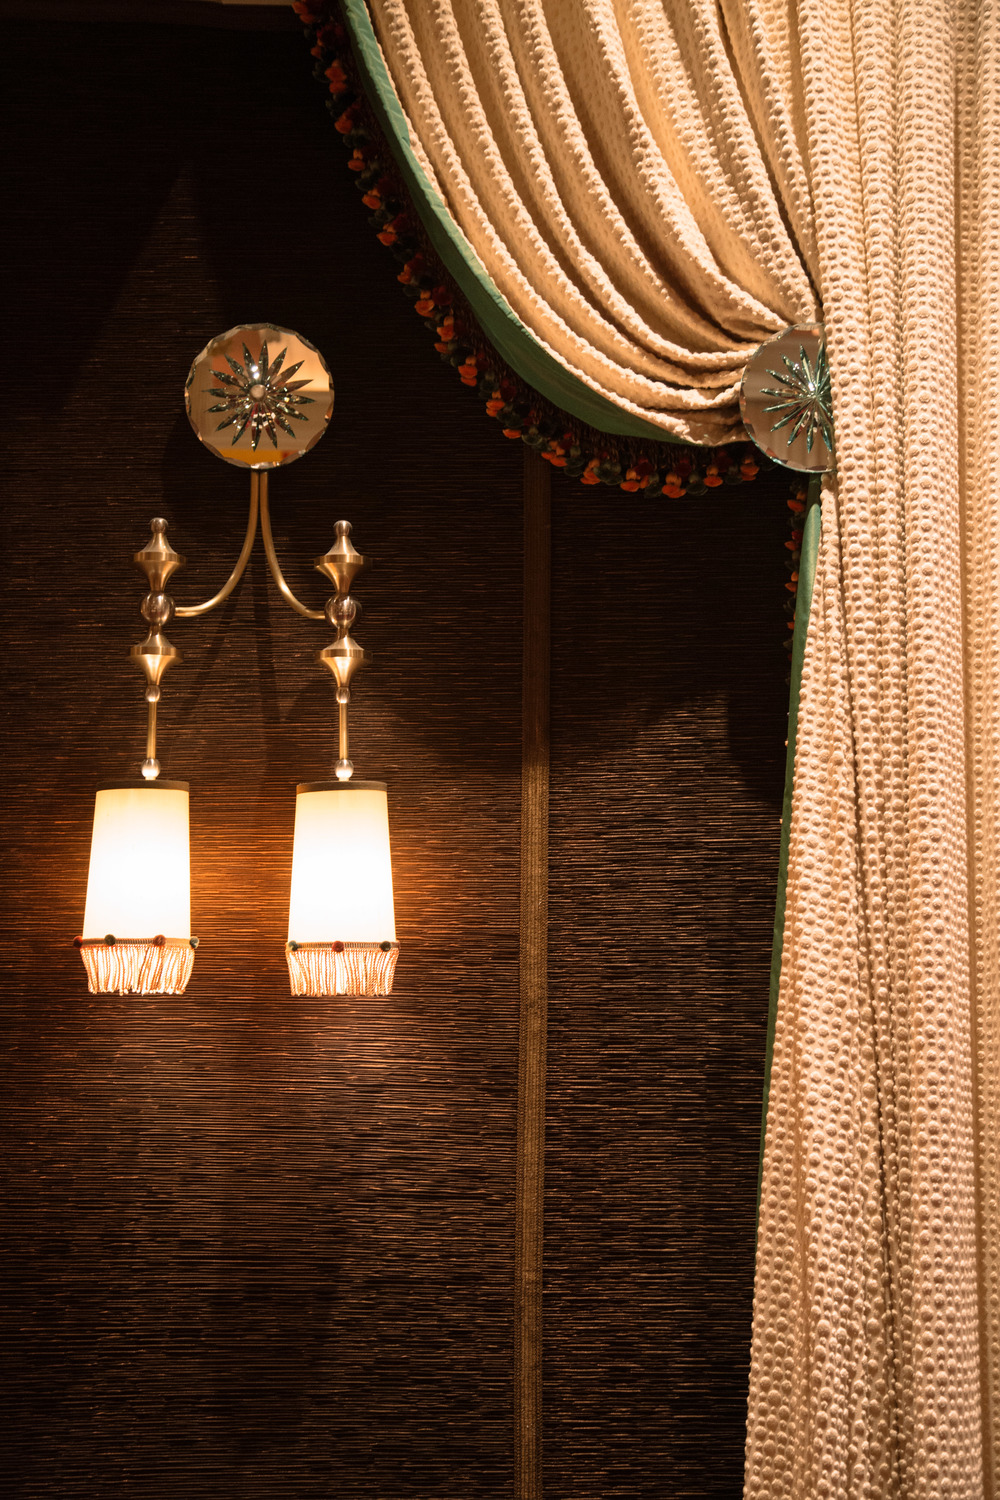 Wynn Hotel's wedding venue, wall sconces, fringe, tassles, drapery, wall upholstery, tiebacks, details | Photographer: Tori Aston